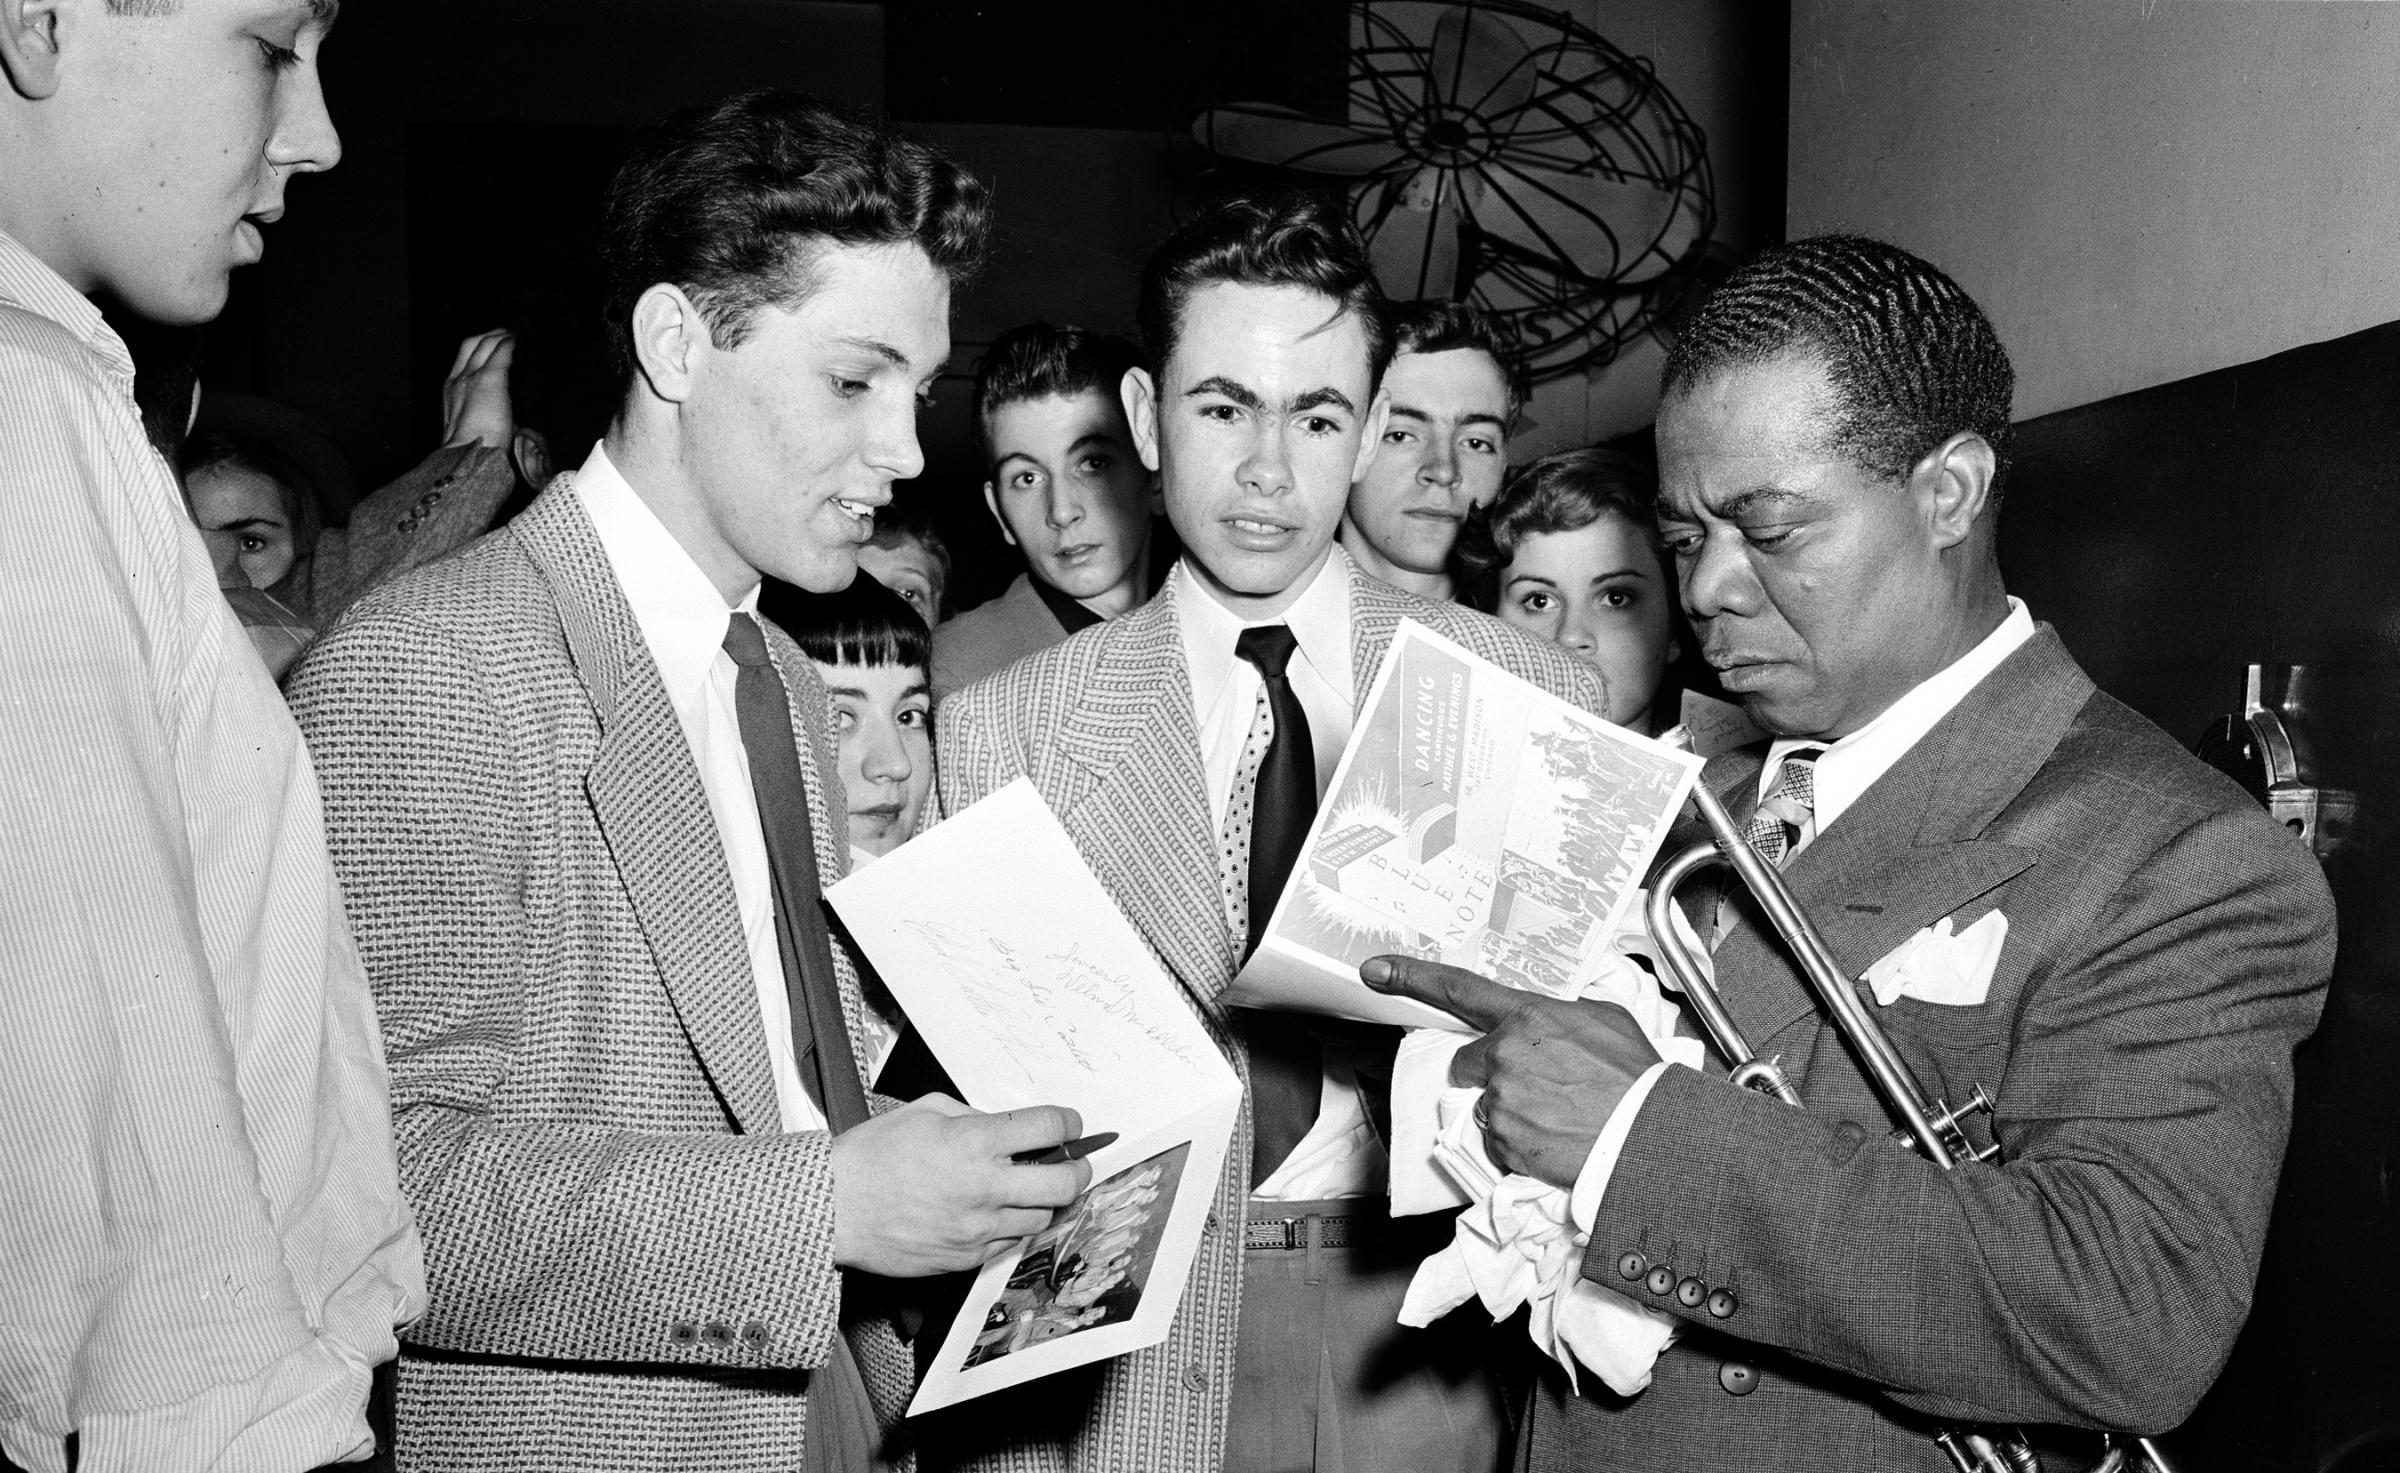 don t you dare call me a hipster i sir am a hep cat kut jazz trumpeter louis armstrong signs autographs in the blue note nightclub in chicago in 1948